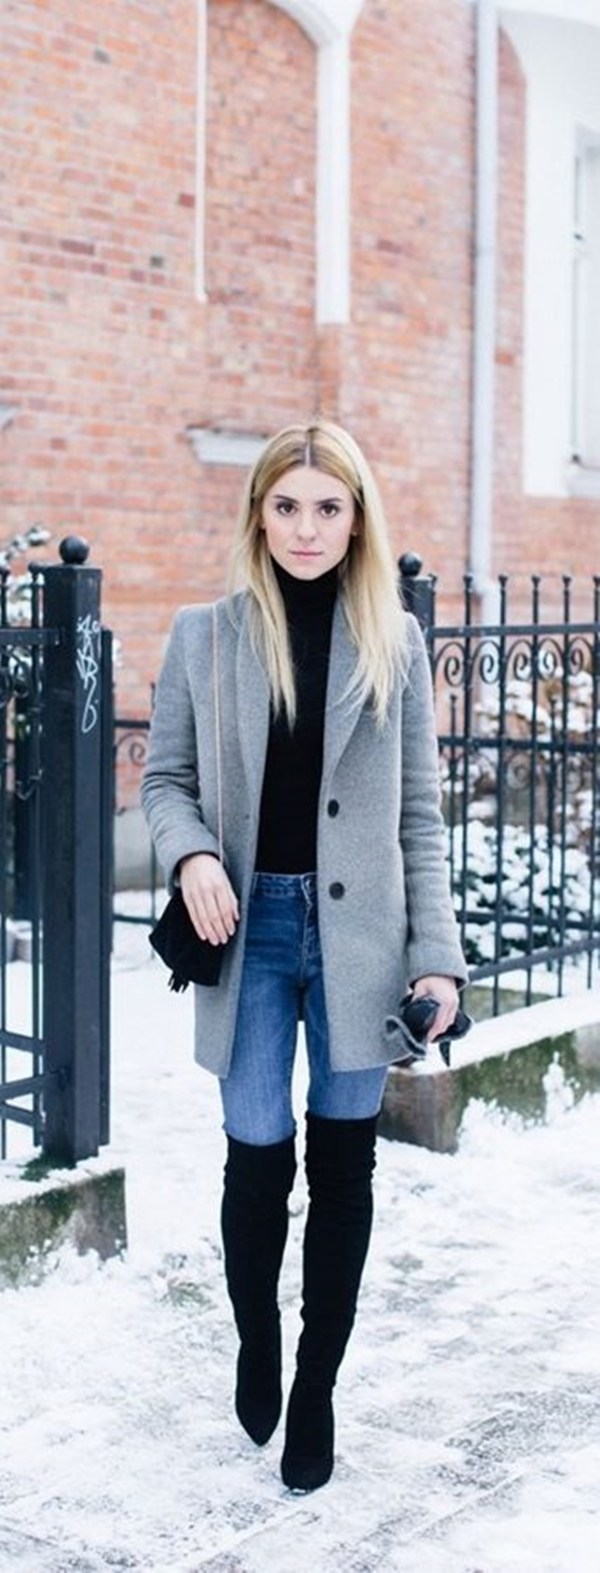 45 winter work outfits for women buzz 2018. Black Bedroom Furniture Sets. Home Design Ideas